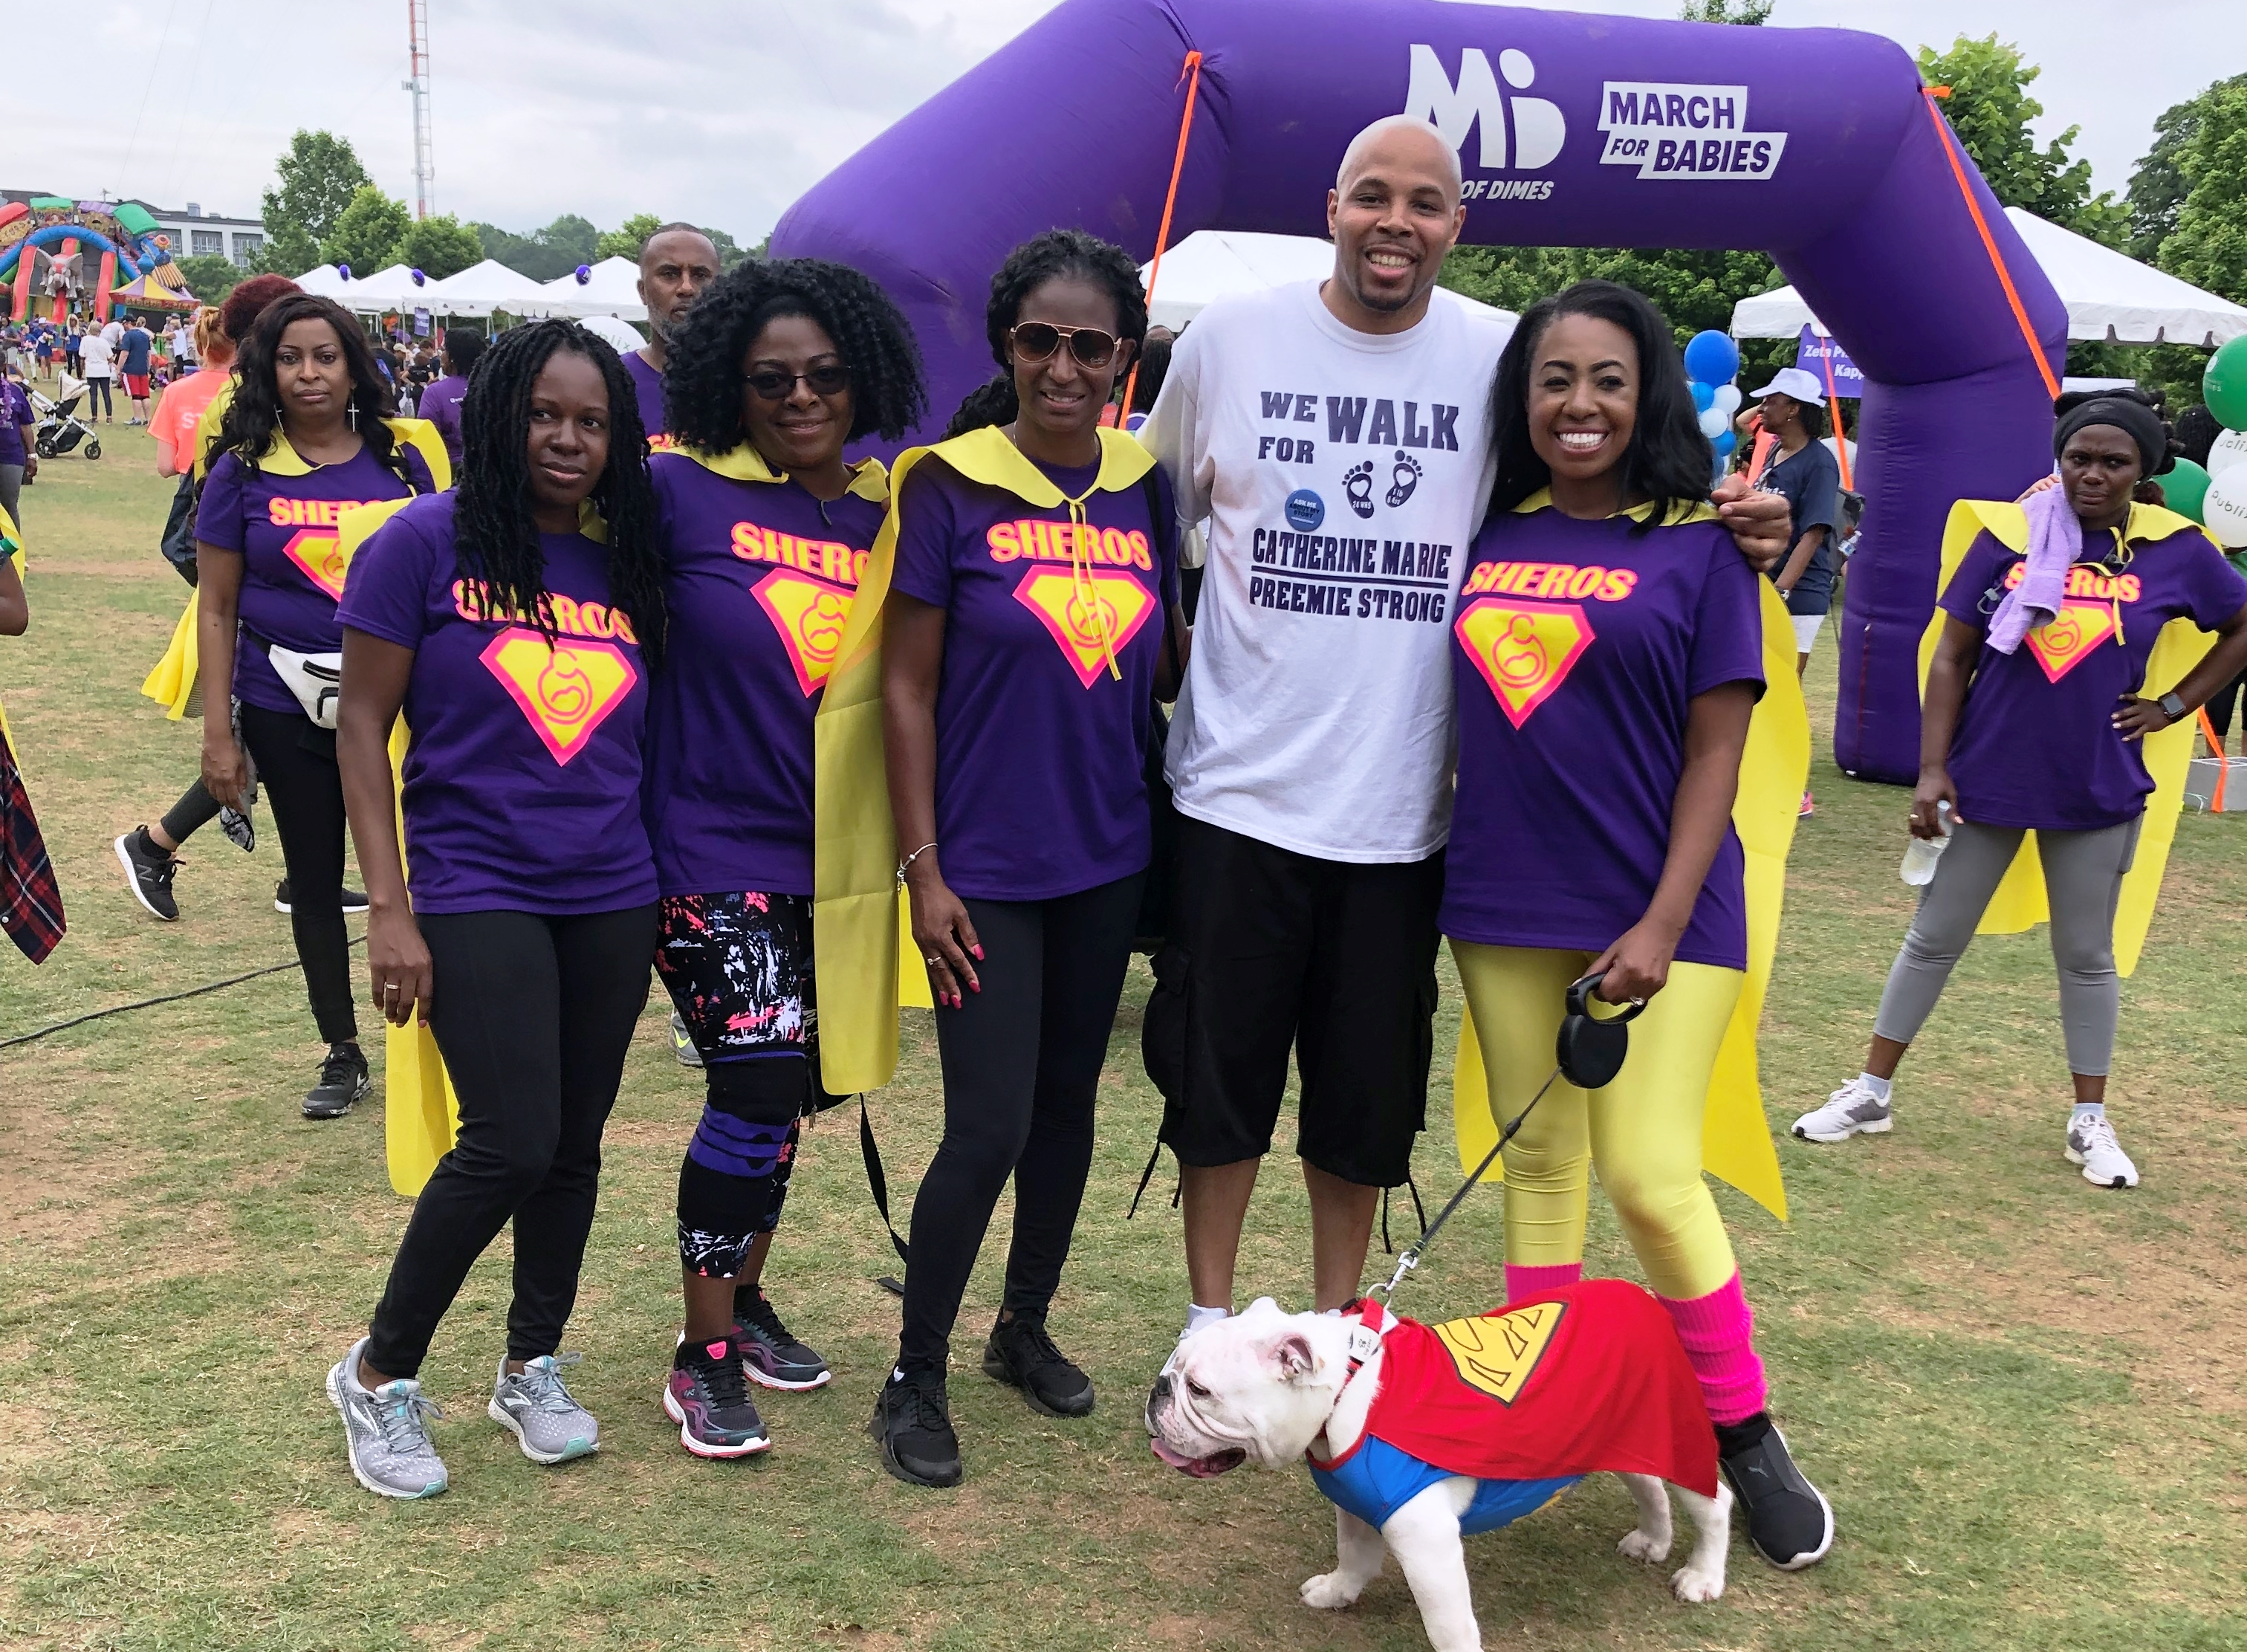 march for babies reec (14)